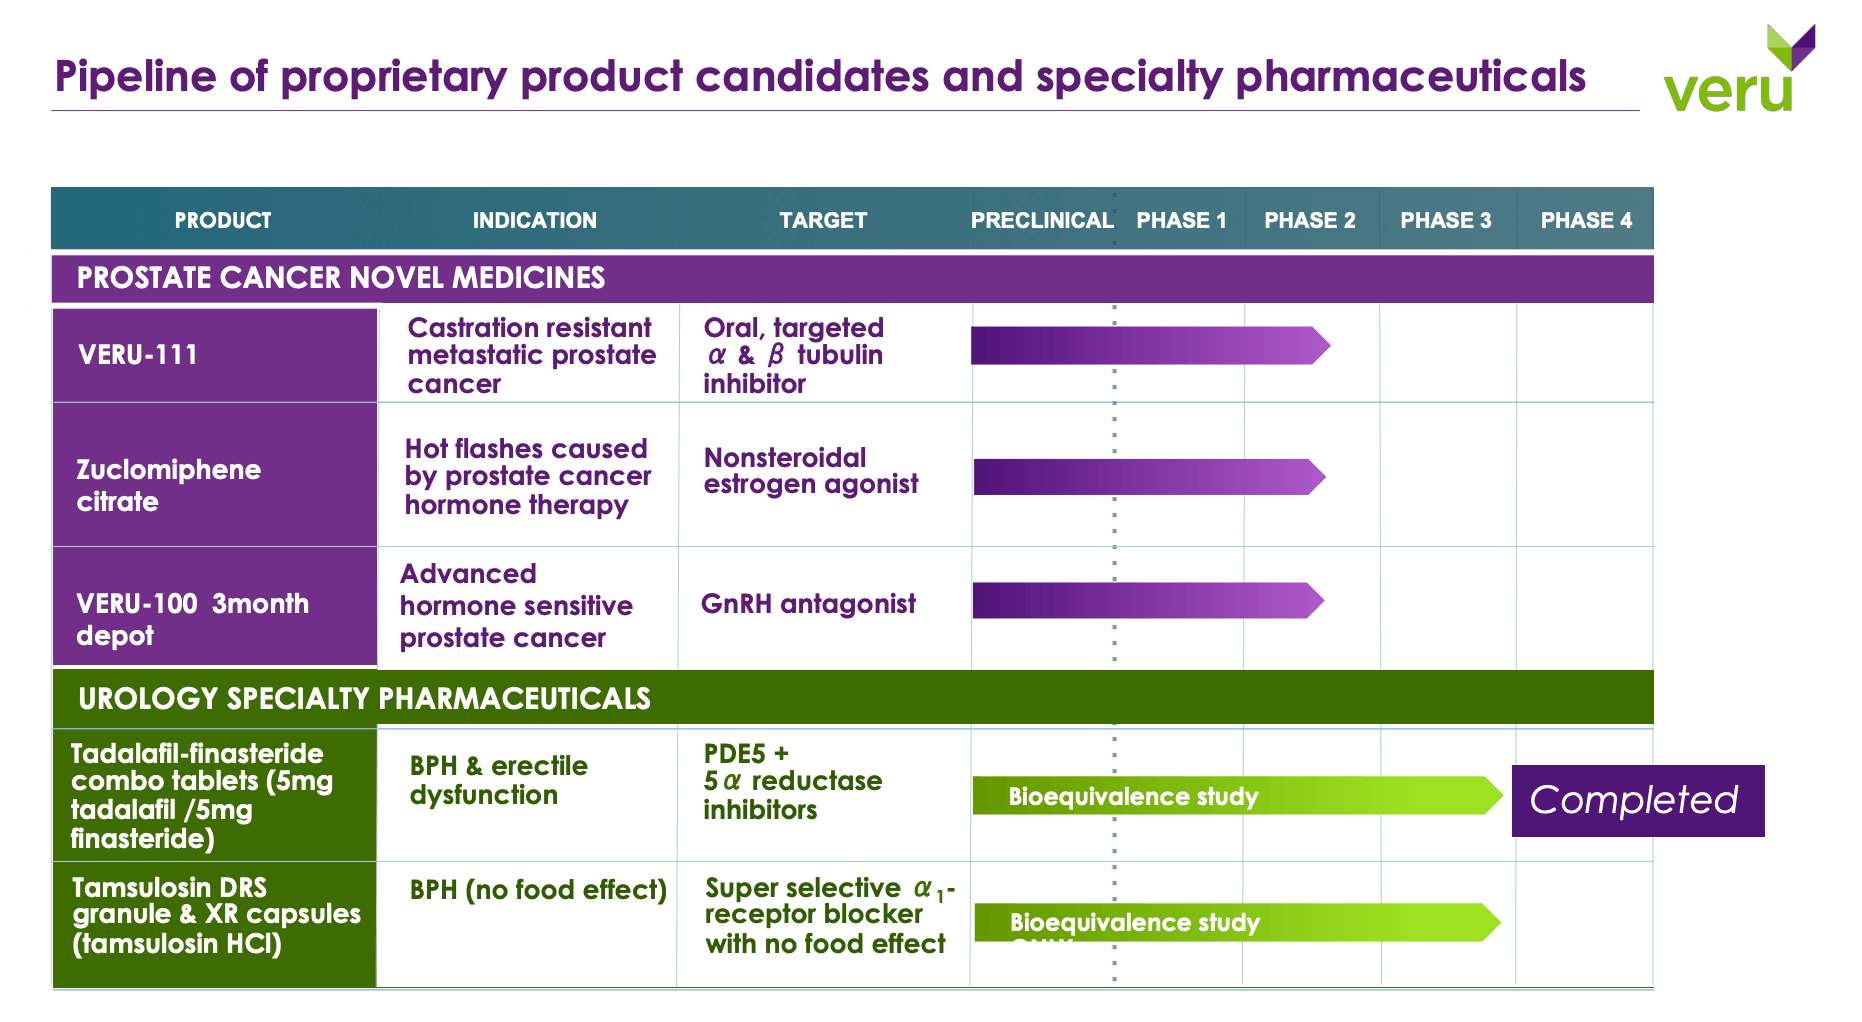 Pipeline of proprietary product candidates and specialty pharmaceuticals